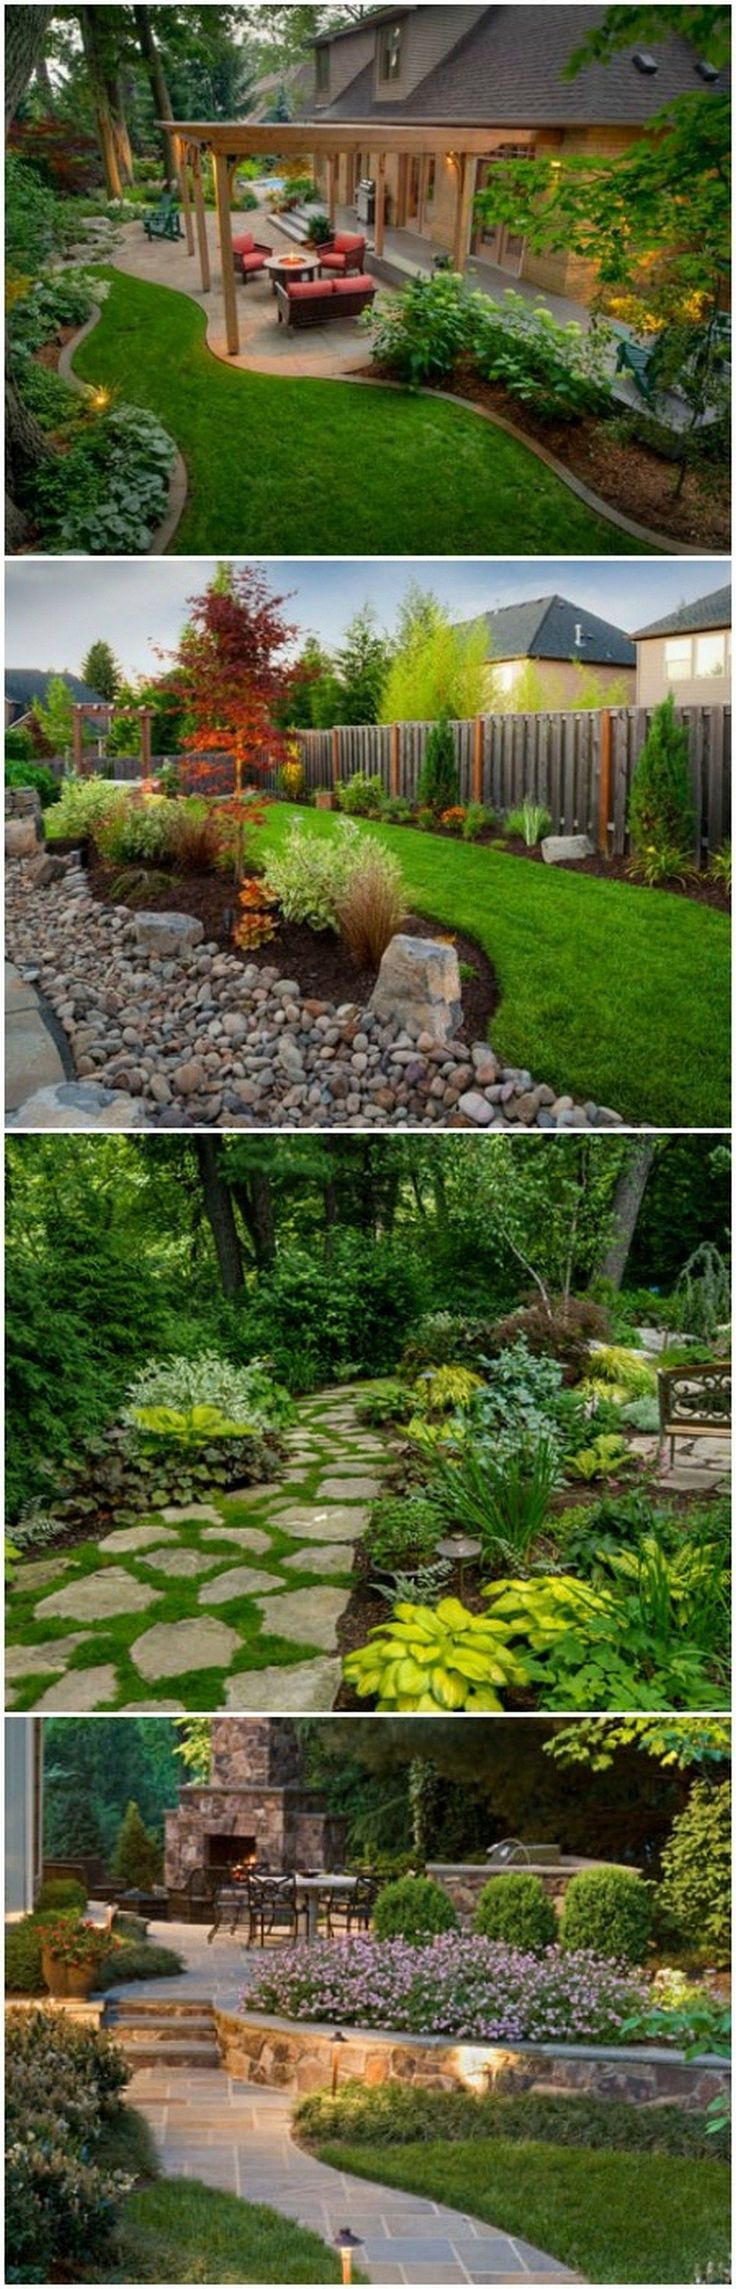 Best 25+ Landscape design ideas on Pinterest | Landscape design ...